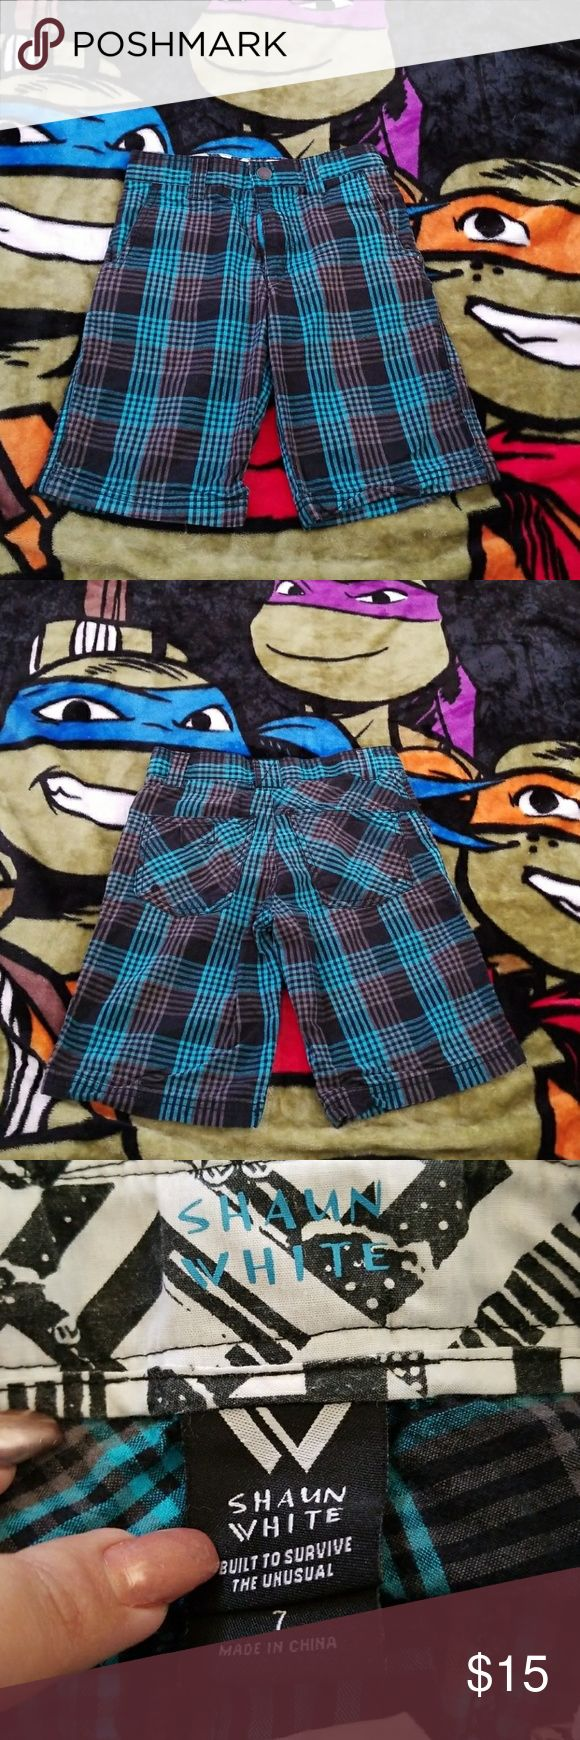 Boys Size 7 Shaun White black & blue plaid shorts Boys Size 7 Shaun White black & bright blue plaid shorts with adjustable waist. Comfortable & lightweight 100% cotton. Used but in excellent condition. Shaun White Bottoms Shorts